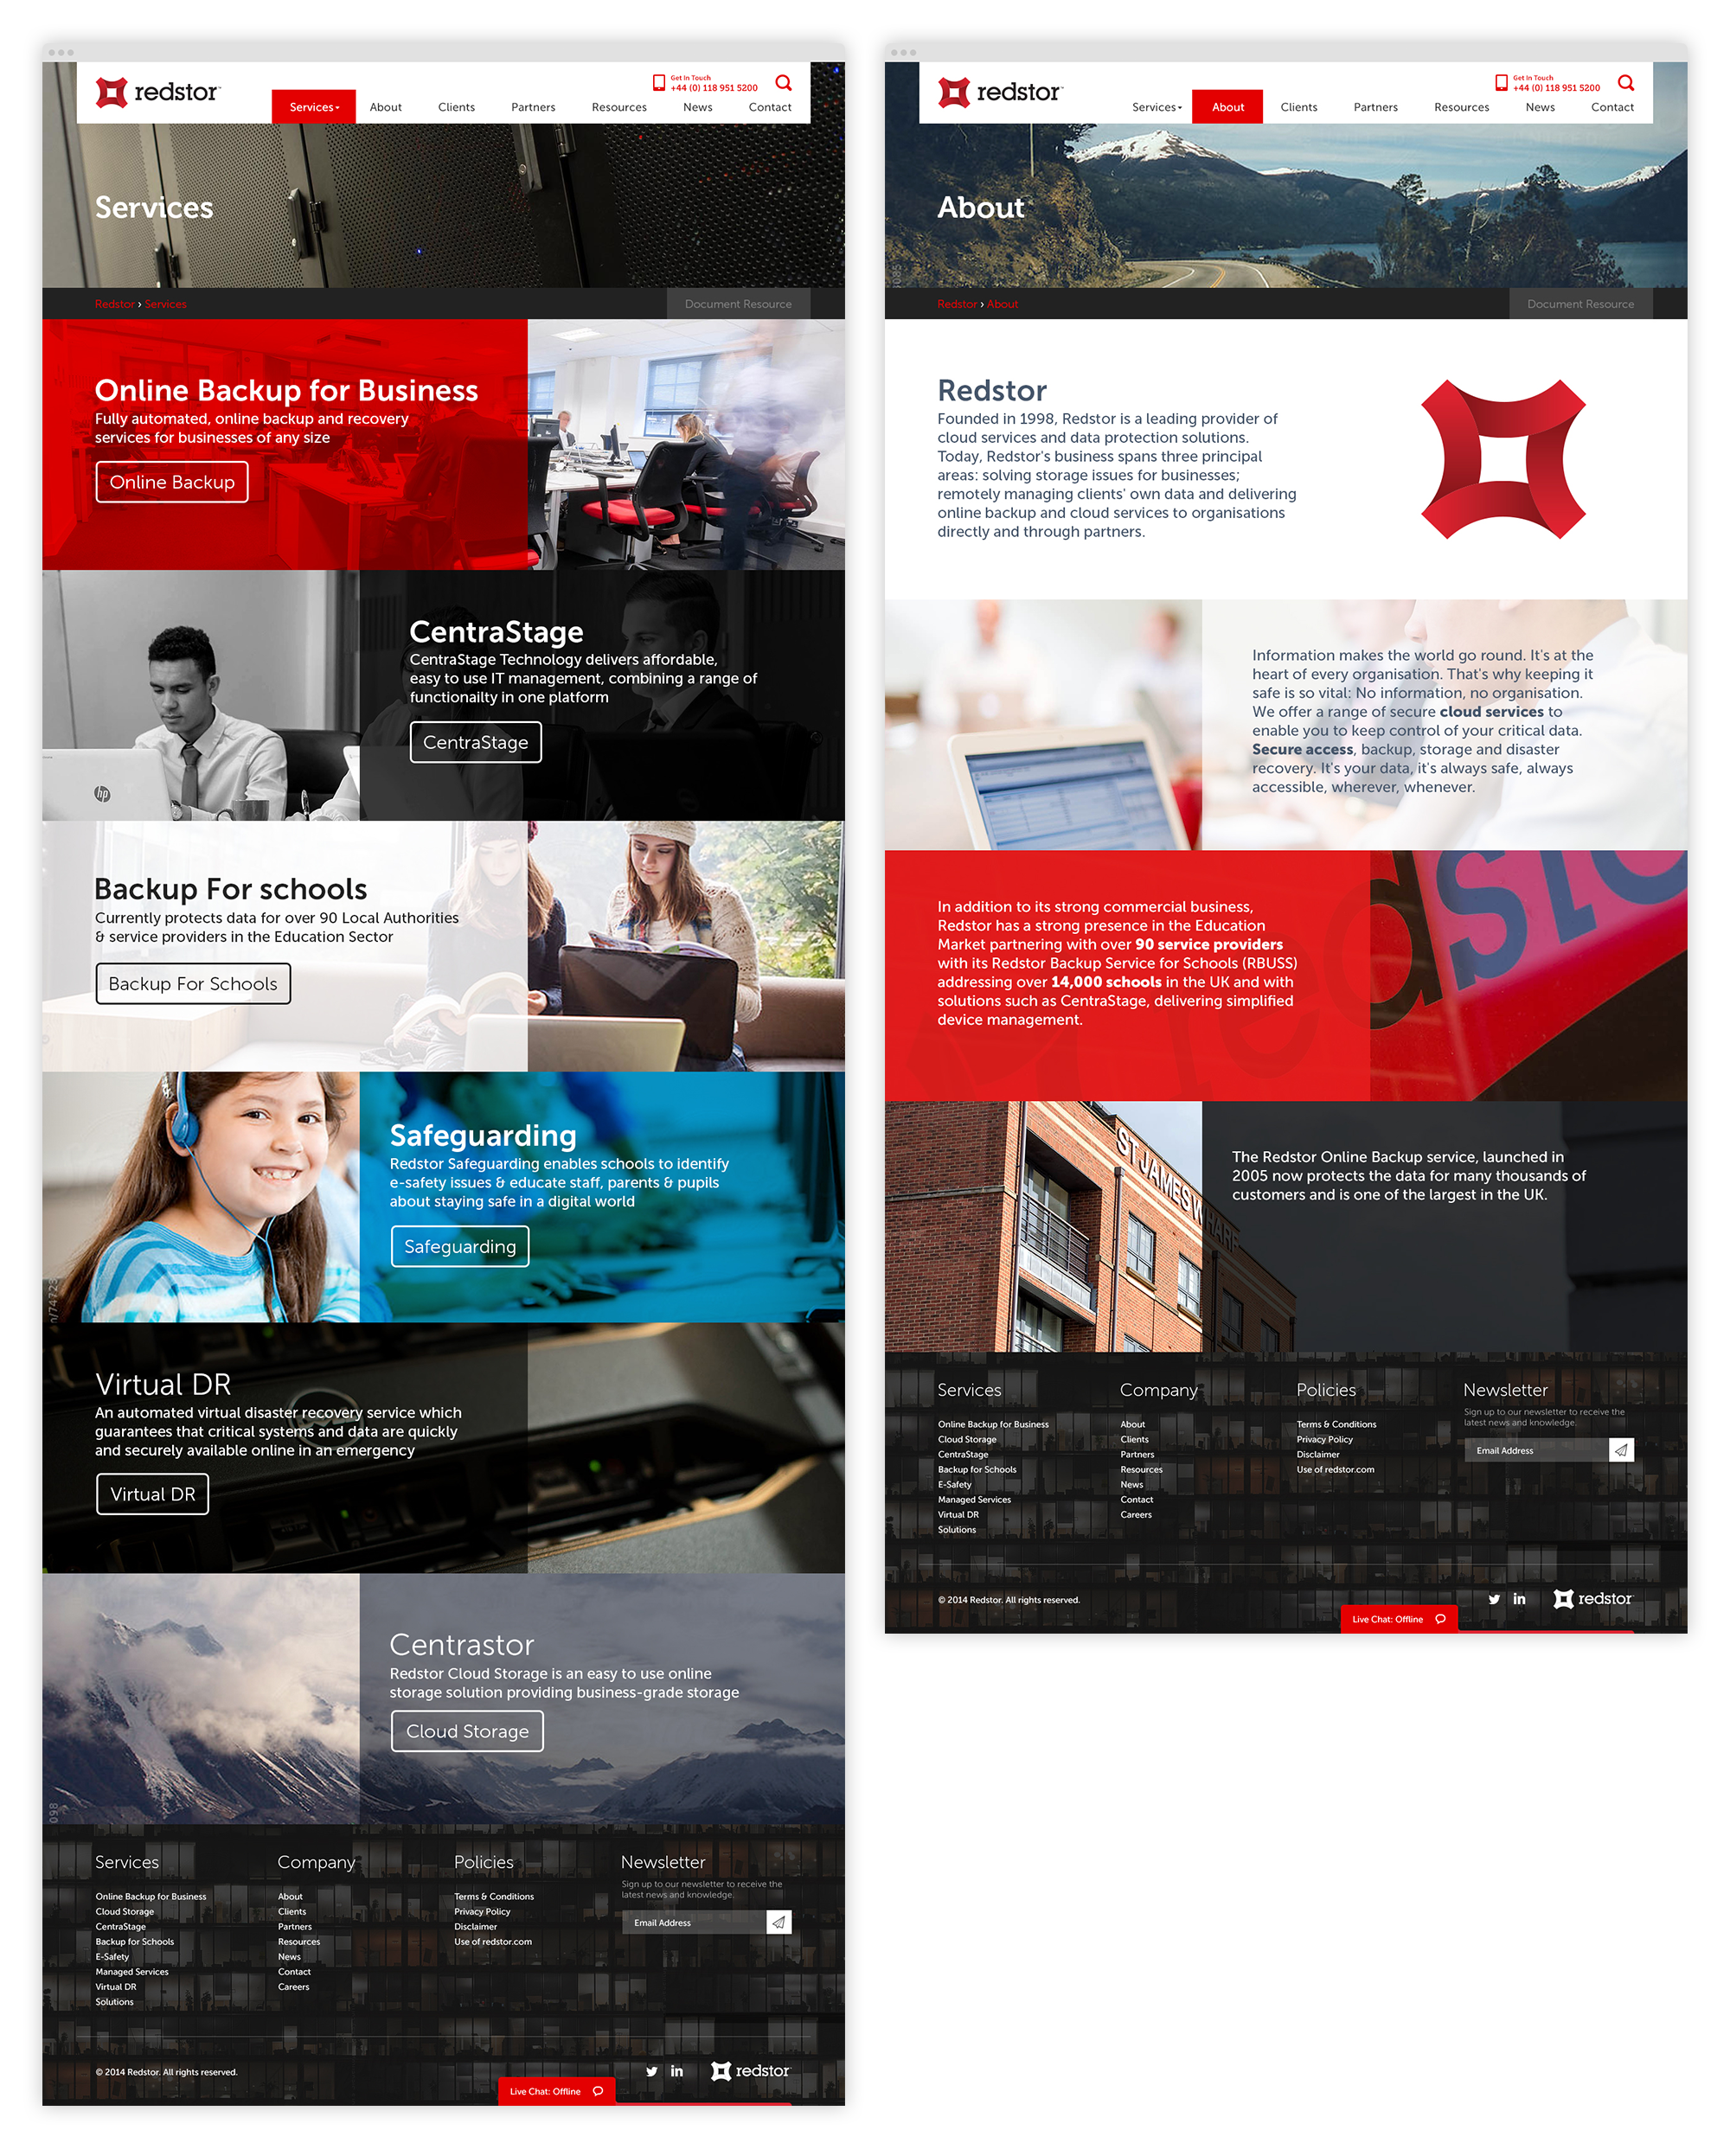 redstor-services-about